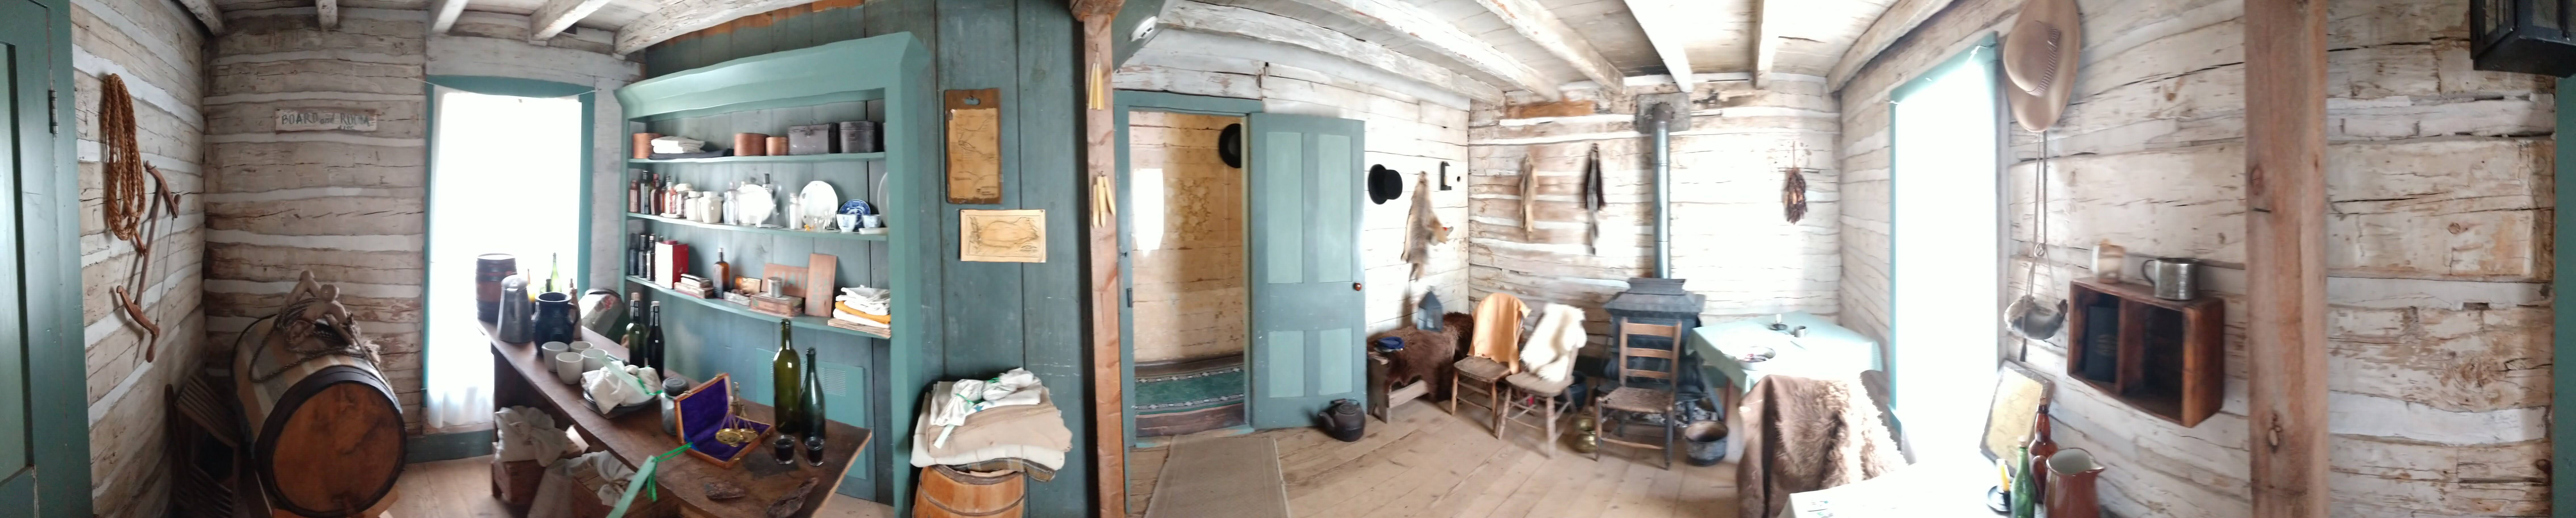 The tavern of the Four Mile House. This is where the men would enter.